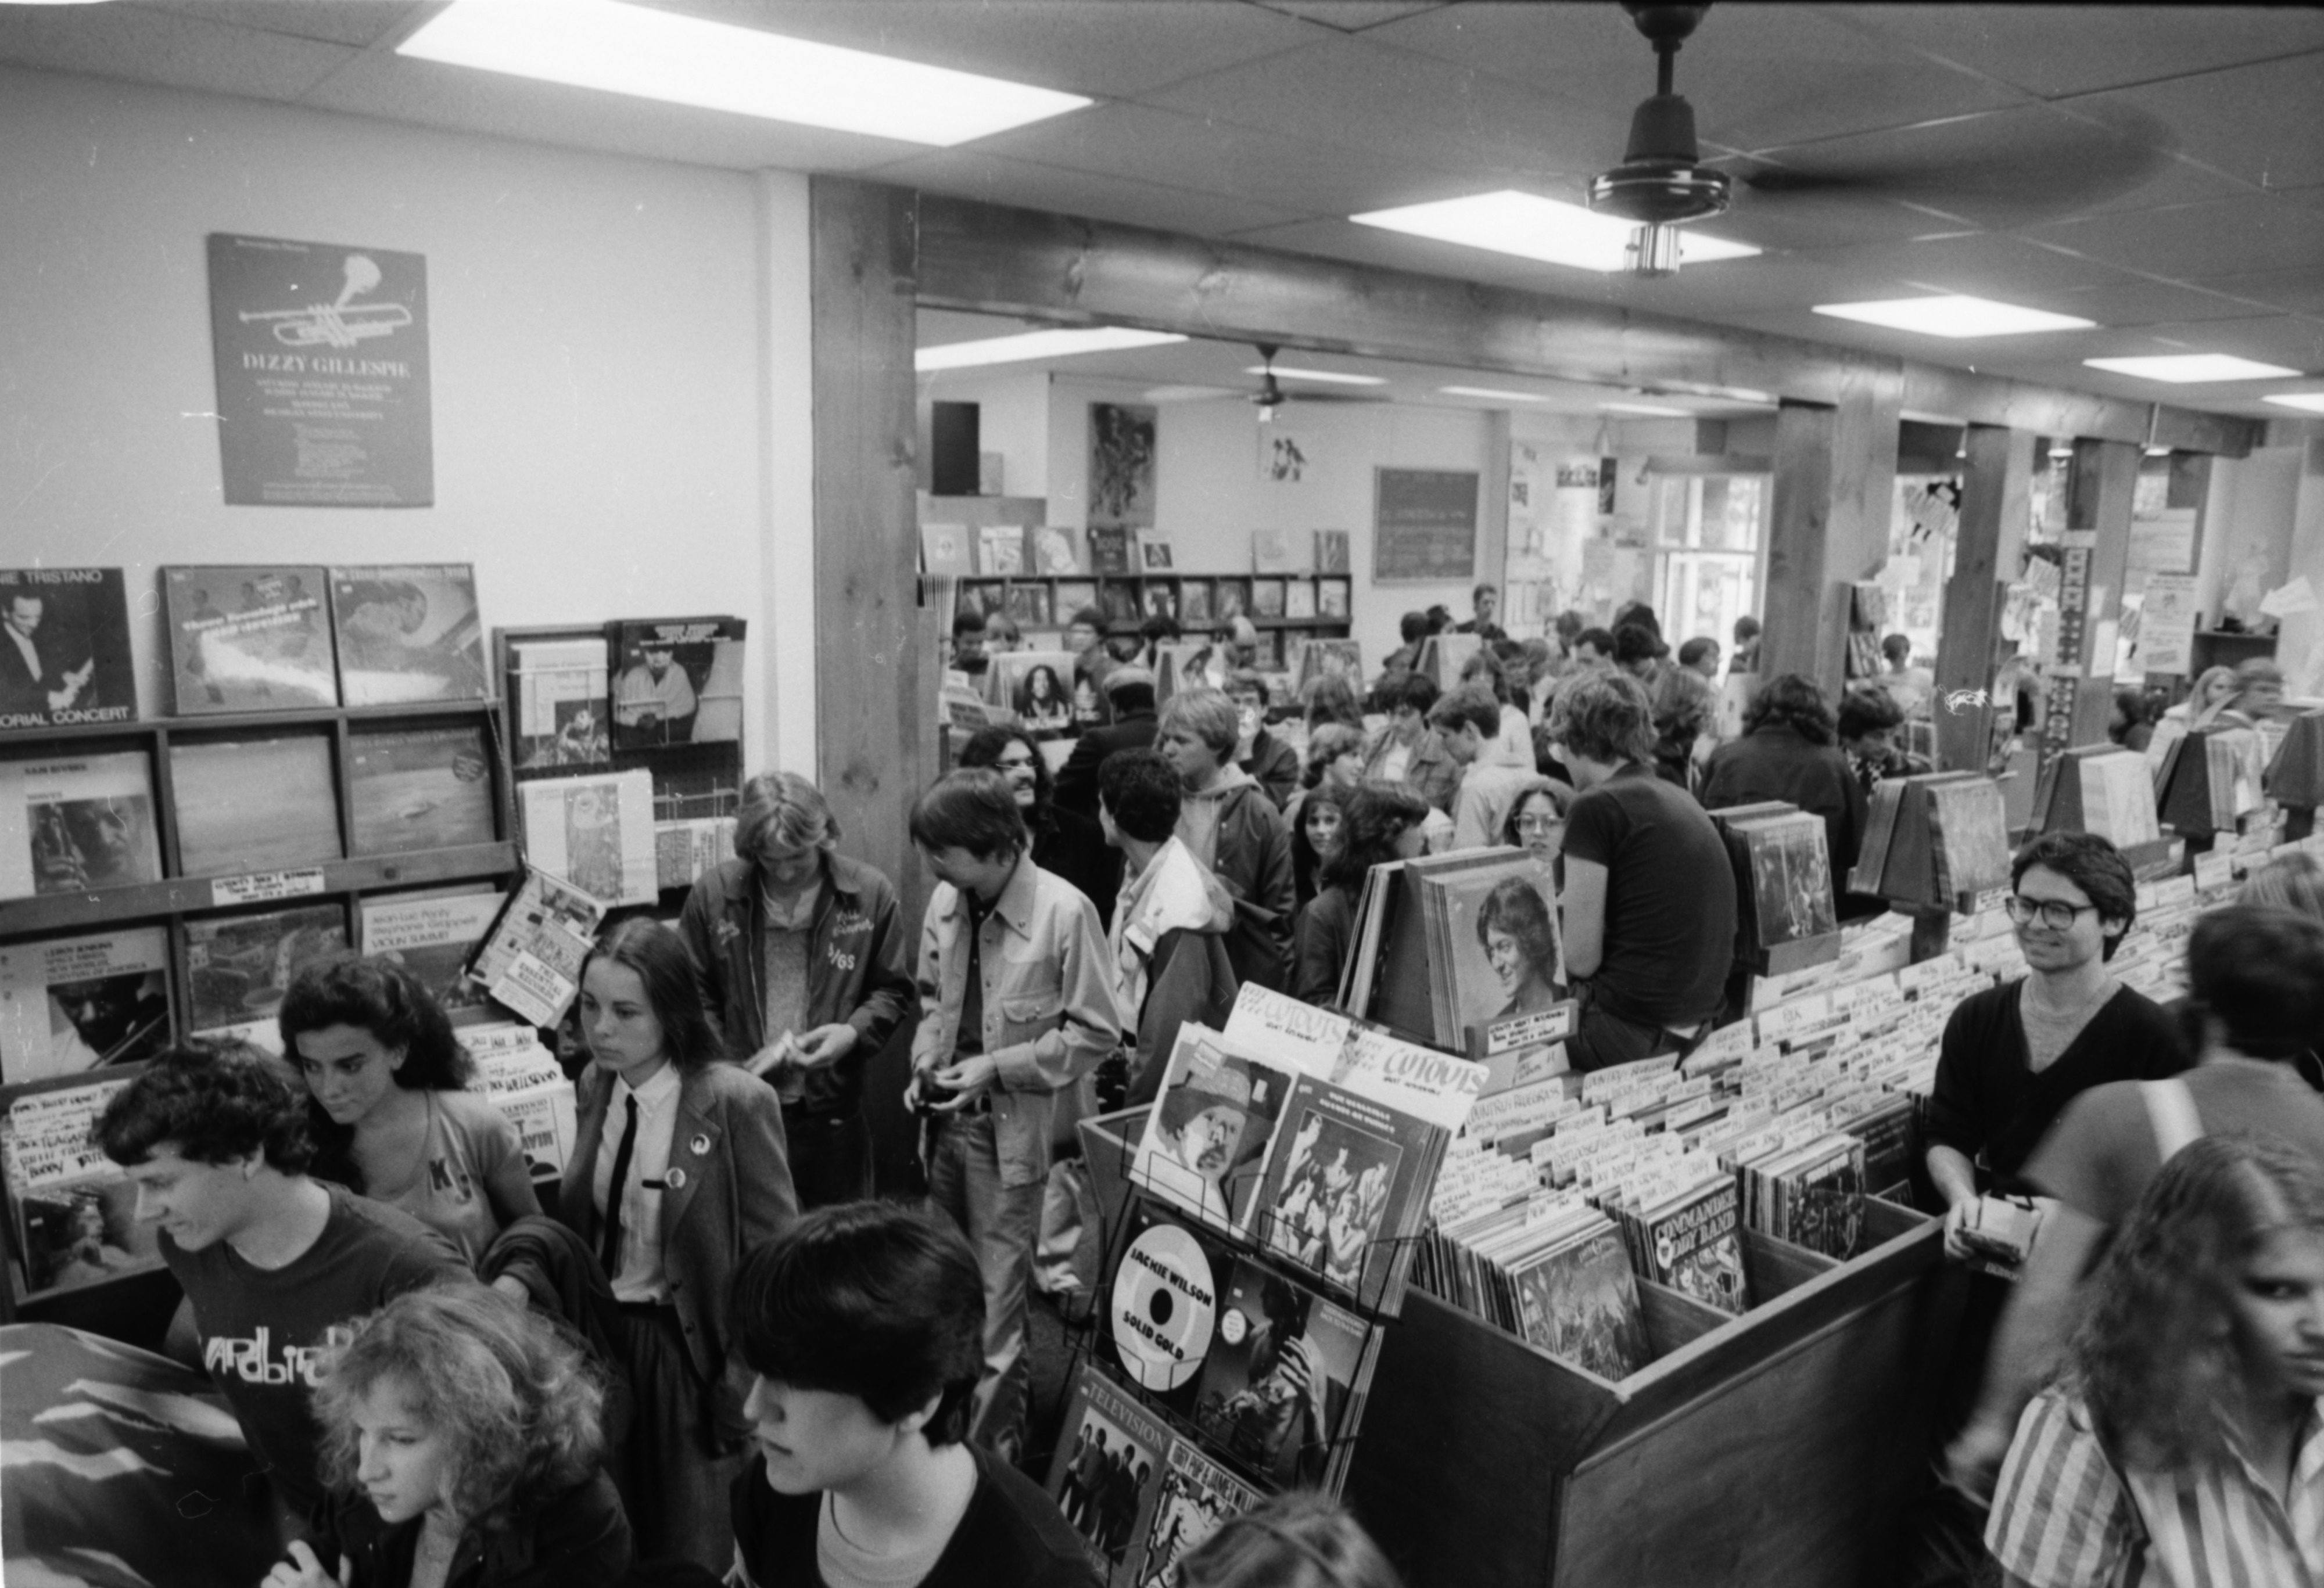 Ramones Fans at Schoolkids' Records, October 5, 1981 image